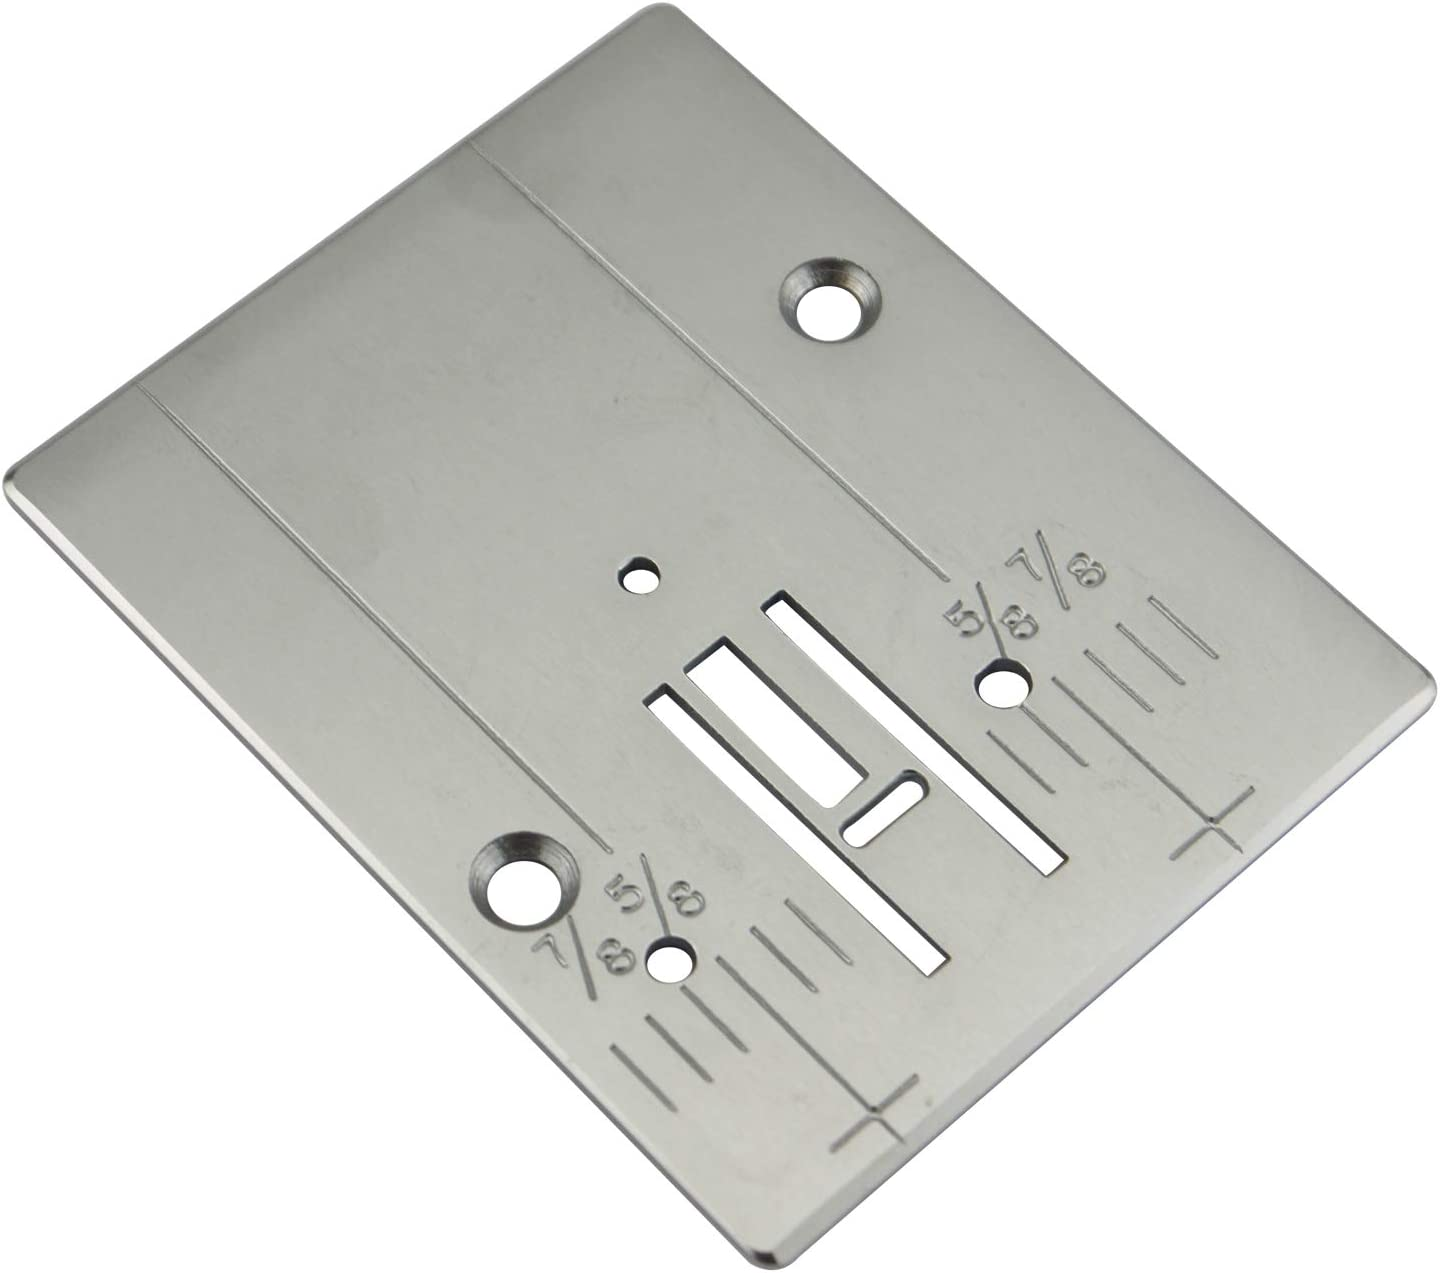 Newhome DREAMSTITCH Needle Plate for Janome Needle Plate-735011 ,Kenmore Sewing Machine